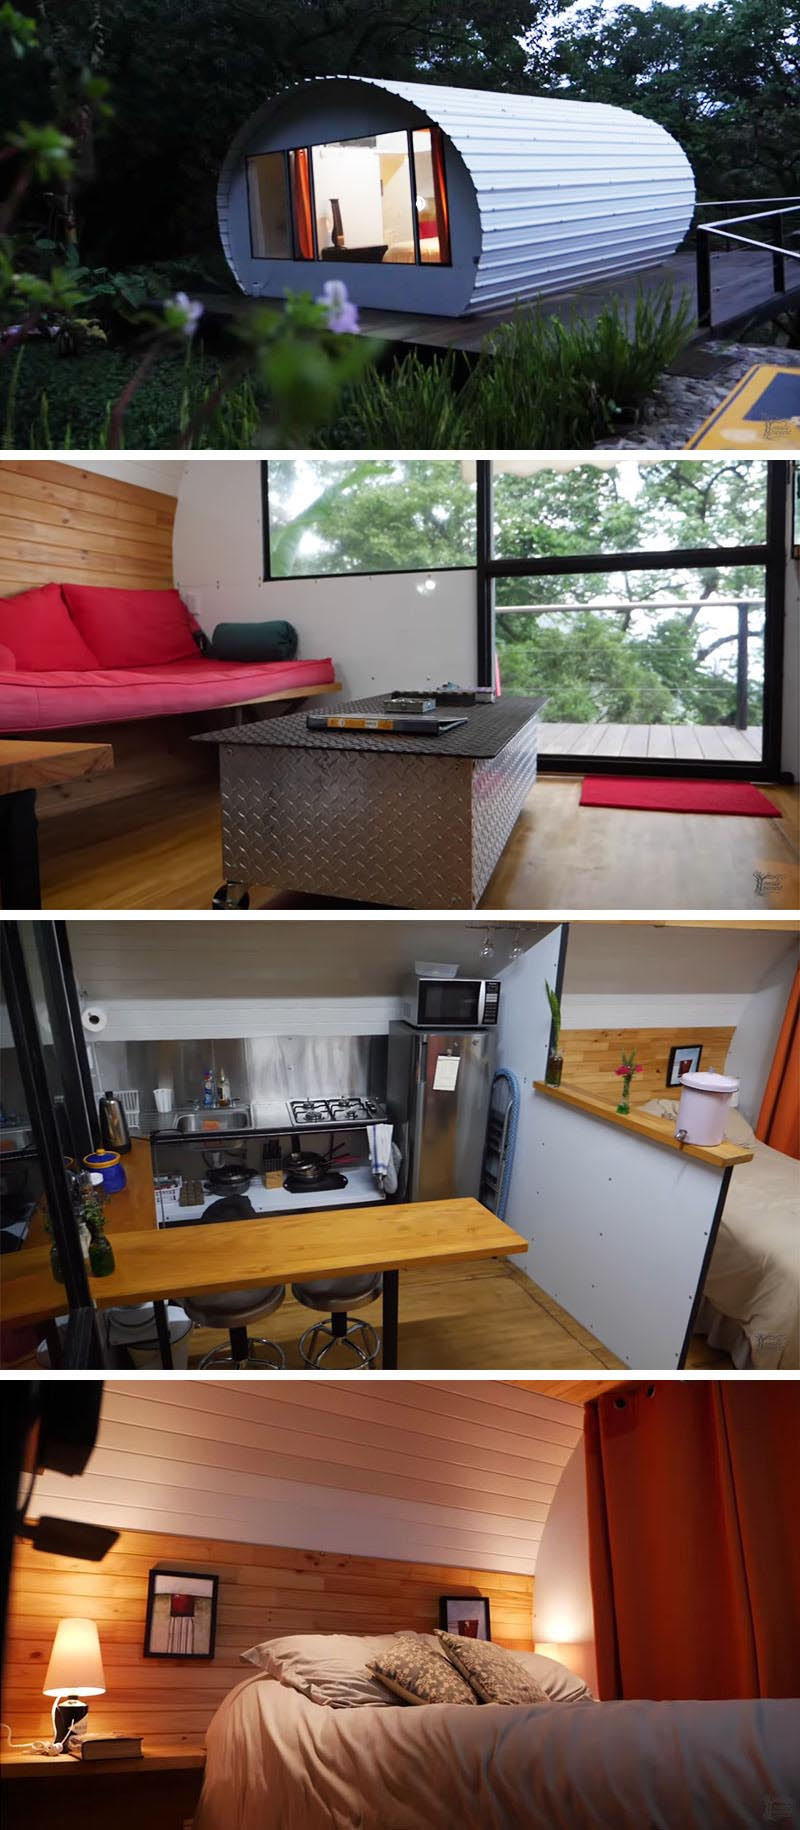 A unique tiny house in Antigua, a city in the central highlands of Guatemala, has a corrugated metal exterior with a white finish, and an open bedroom, a bathroom, kitchen, and a small living area with a couch that doubles as a bed.